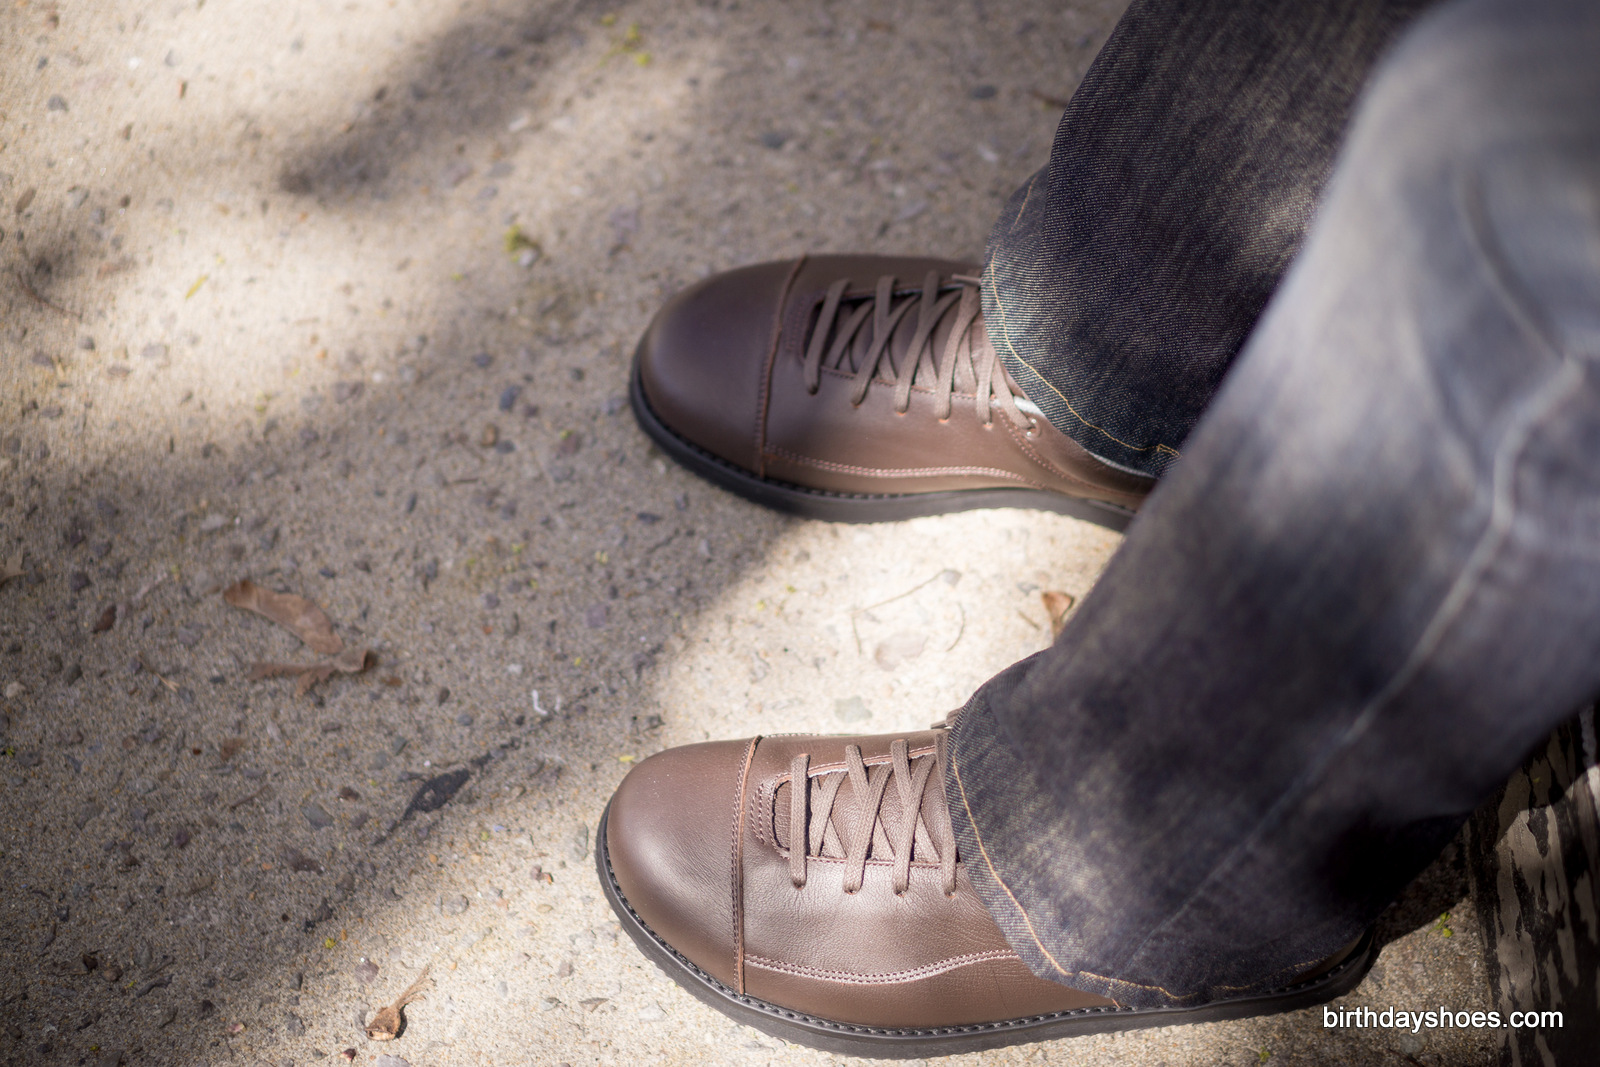 The Oxford is a great choice if you want your minimalist-inspired dress shoe with laces